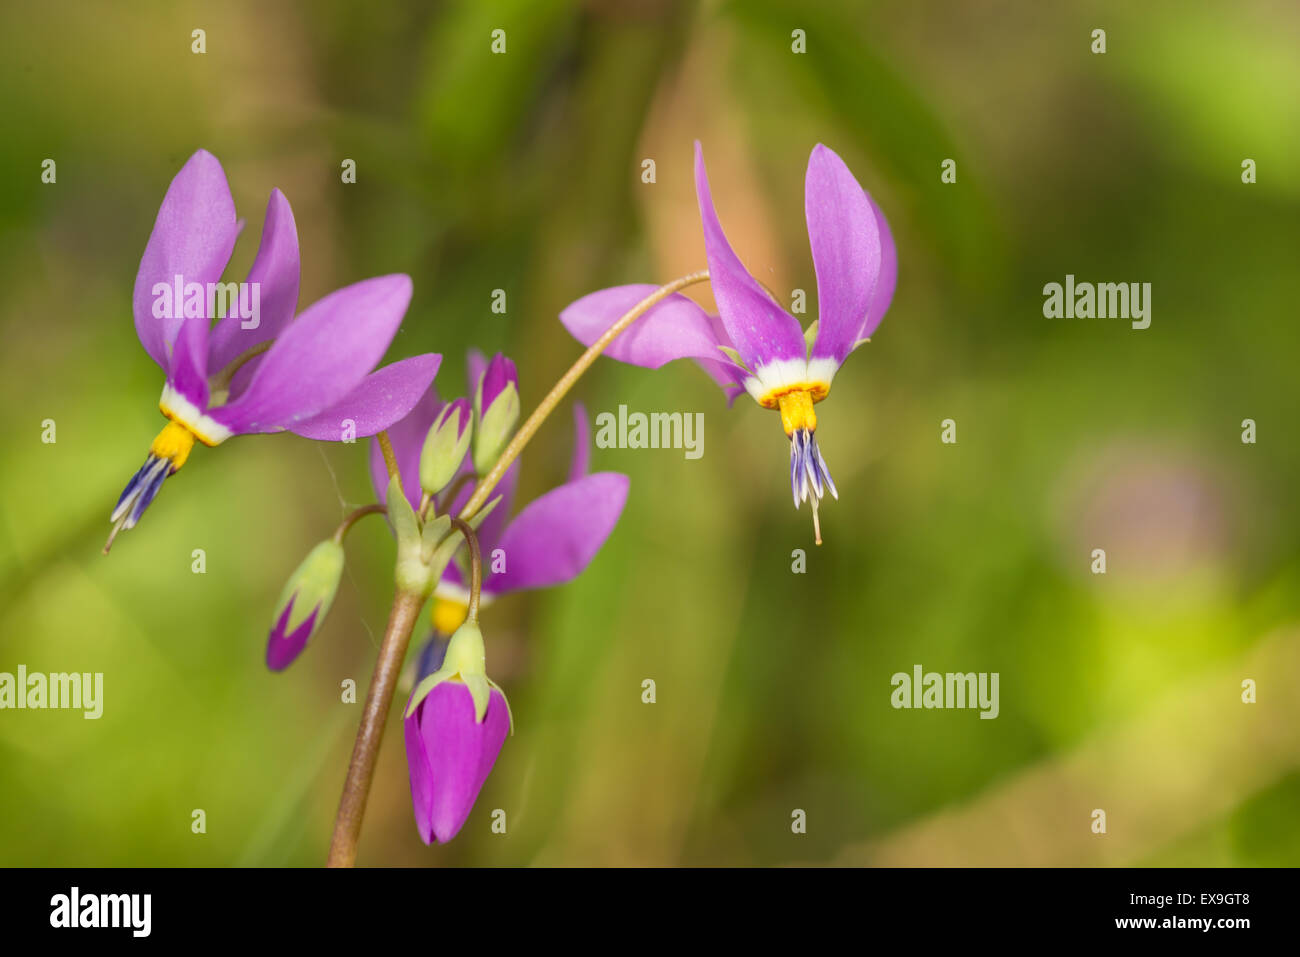 A cluster of saline shooting stars, Dodecatheon pulchellum, growing in a calcareous bog, Wagner Bog, Alberta - Stock Image